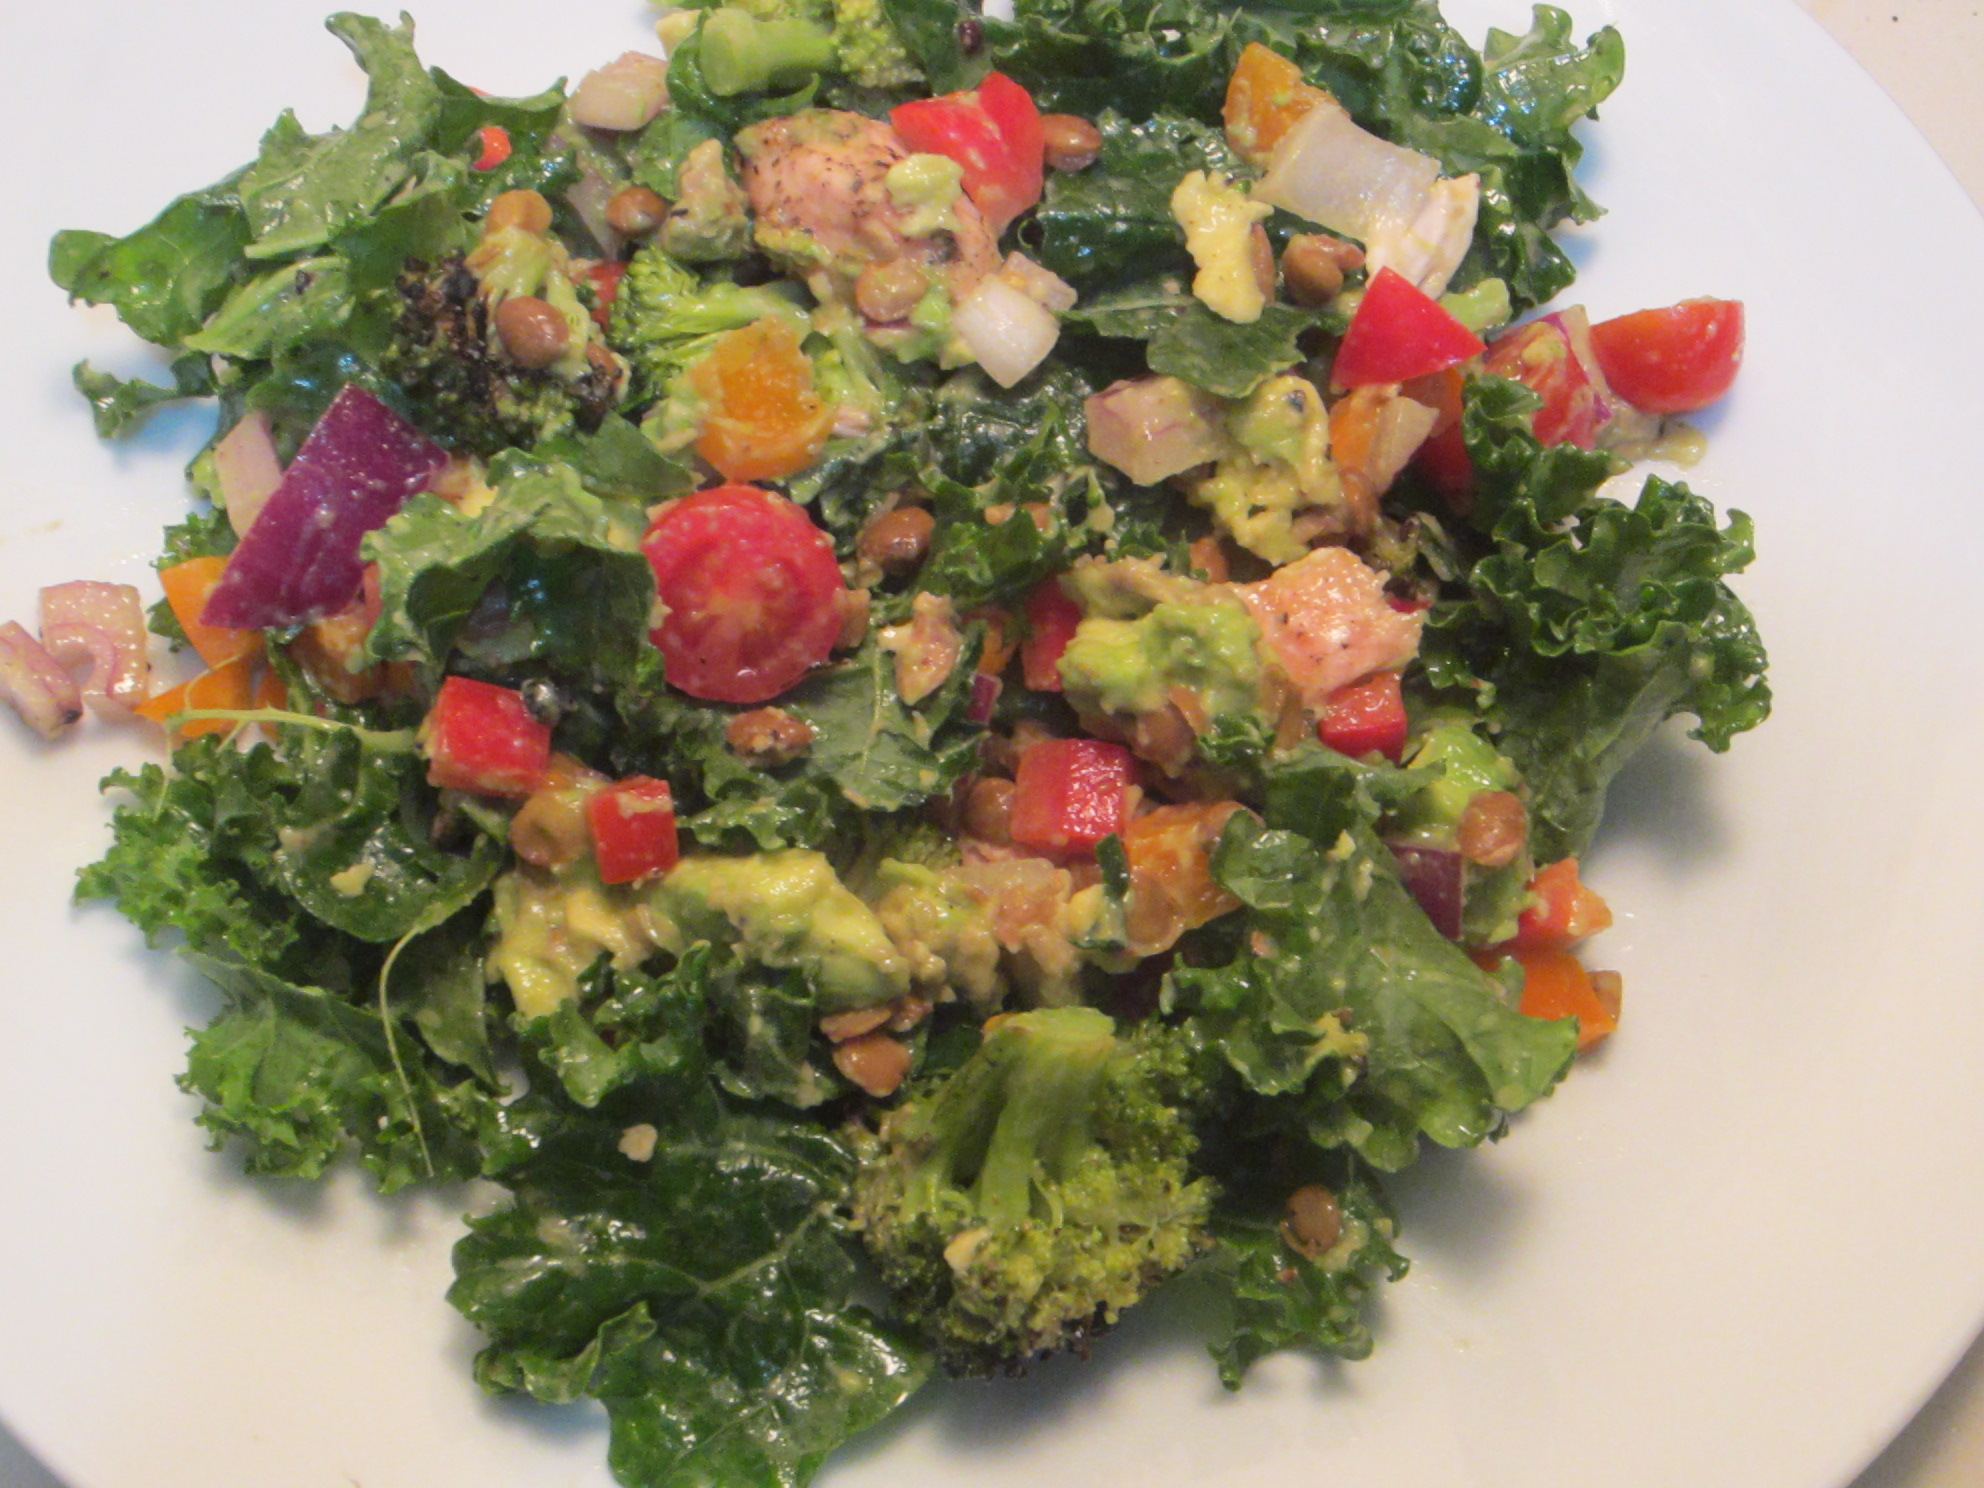 Kale Salad with Chicken and Creamy Cumin Dressing